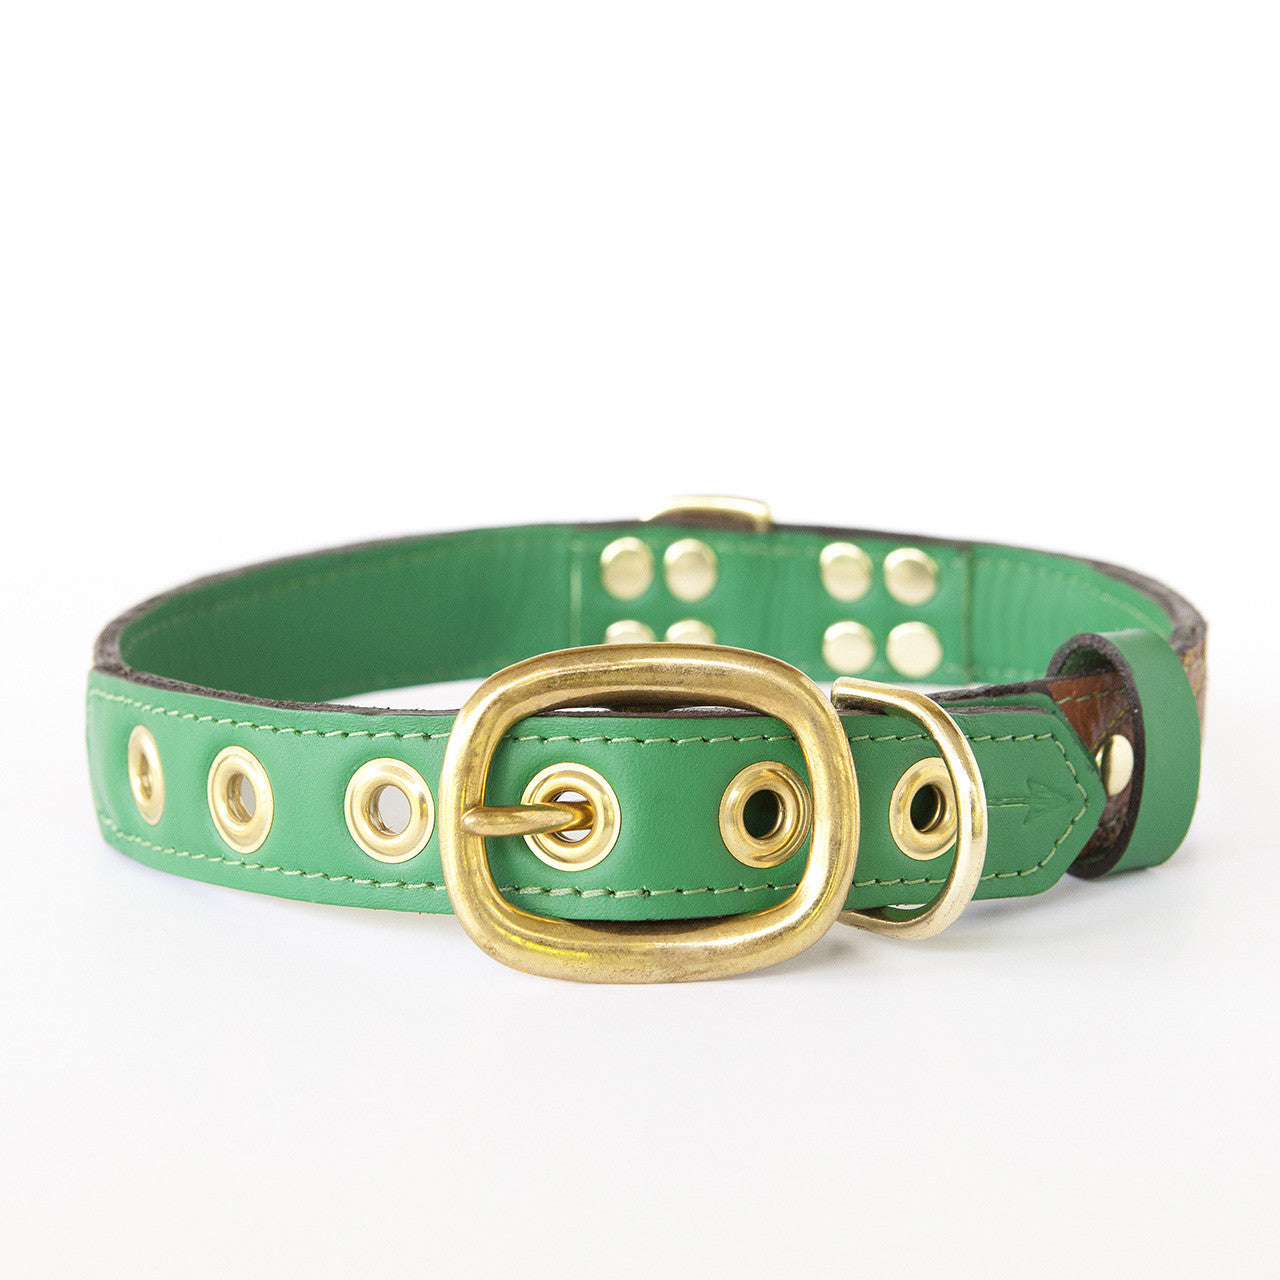 Emerald Green Dog Collar with Brown Leather + Green and Yellow Stitching (back view)